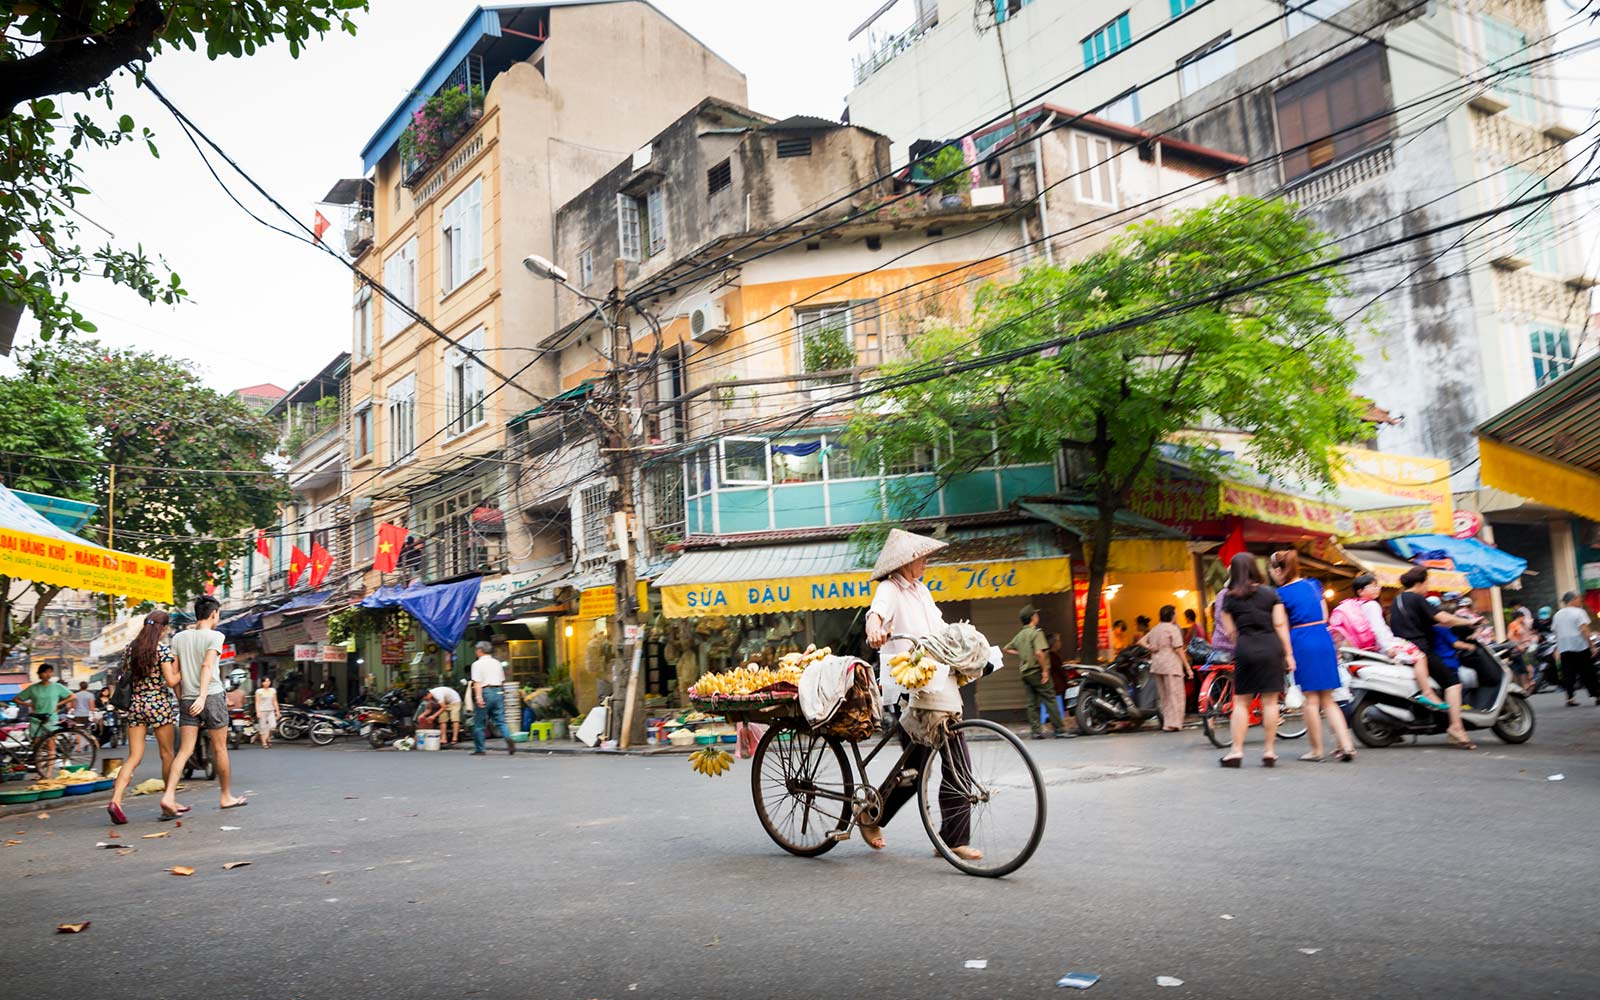 Hanoi - a culture and history hub